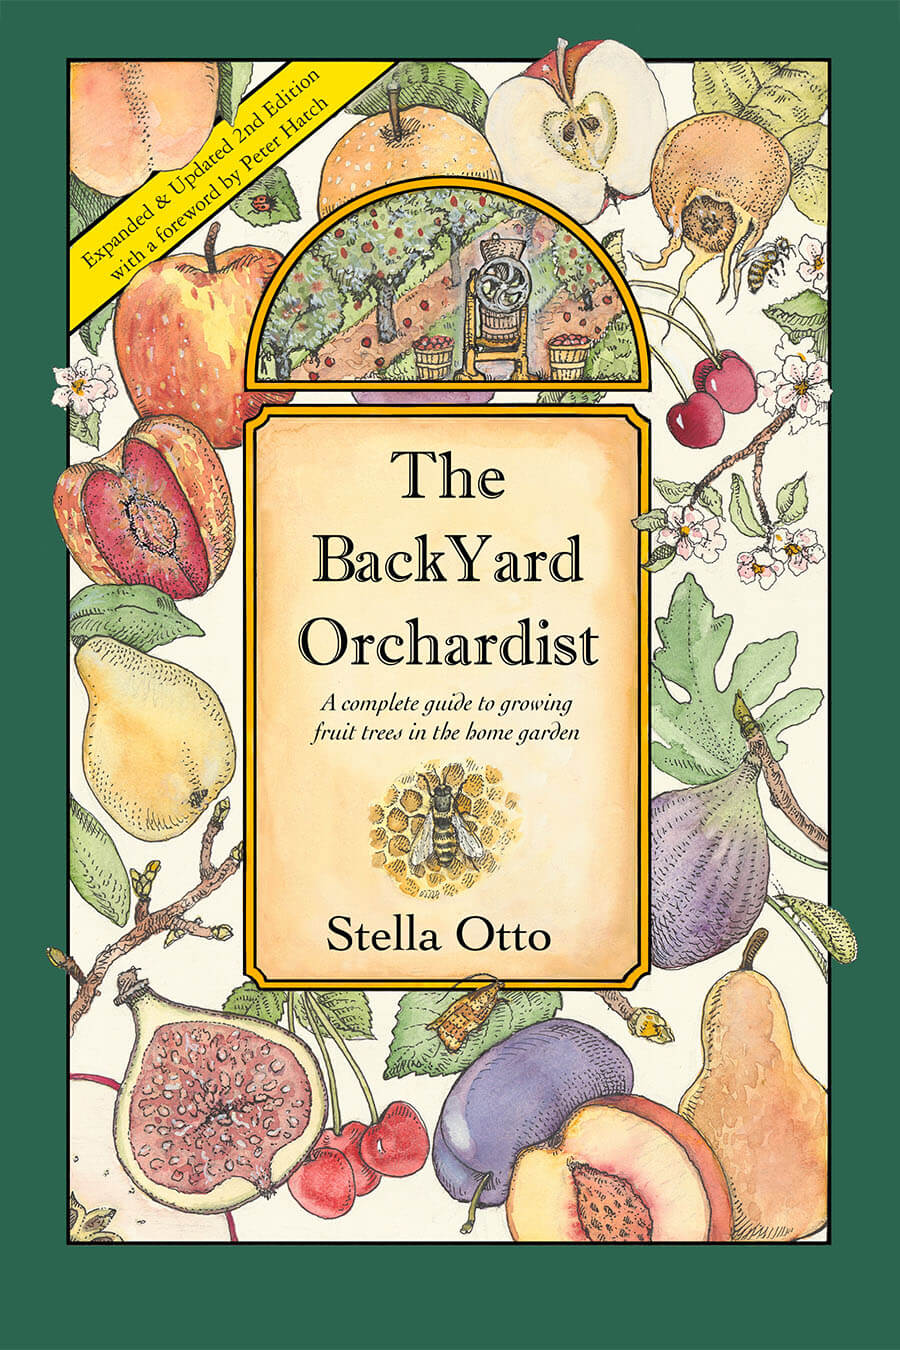 The Backyard Orchardist cover